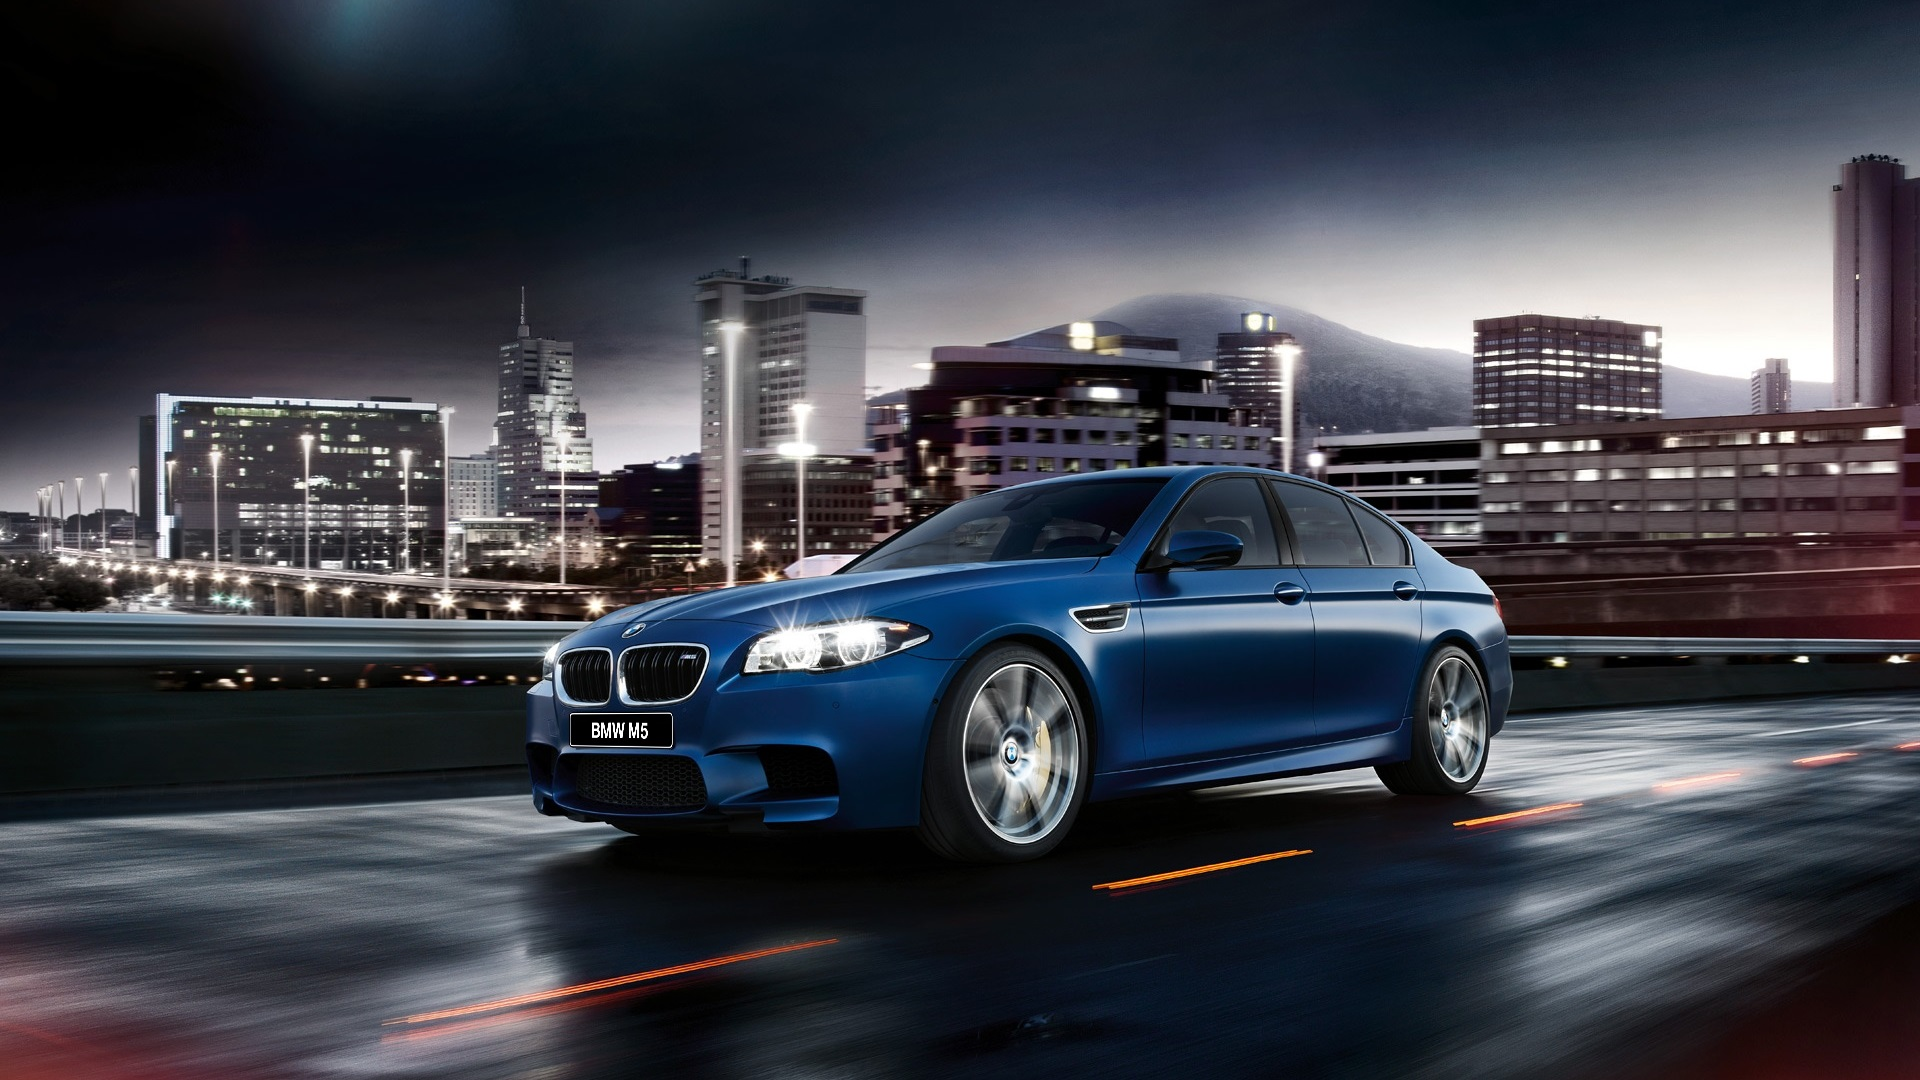 Wallpaper 2015 Bmw M5 F10 Blue Car Side View 1920x1200 Hd Picture Image